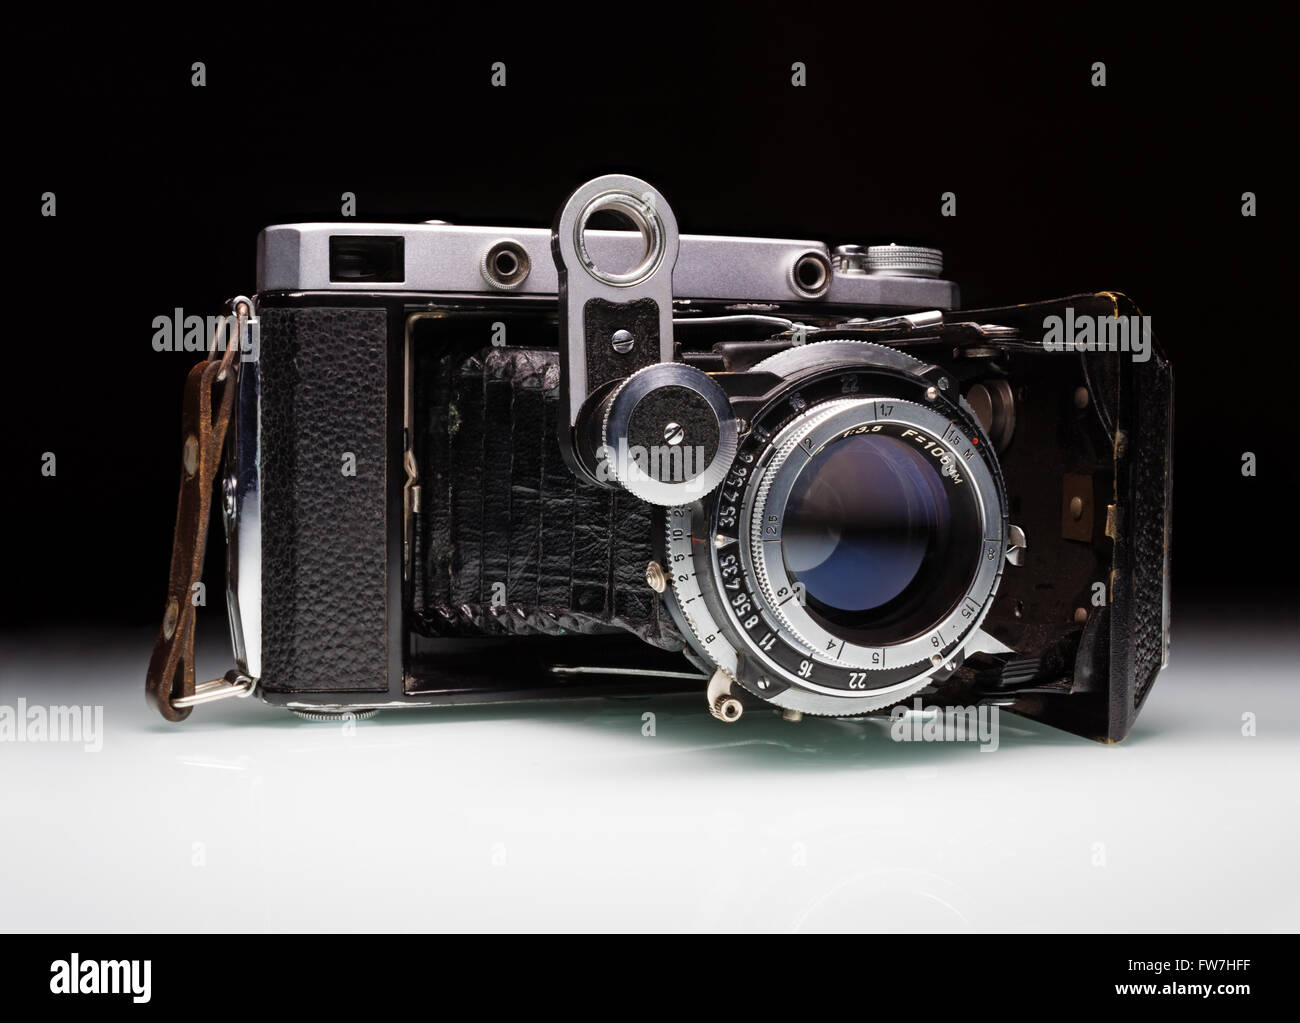 A very old folding bellows camera against a black background, studio shot - Stock Image